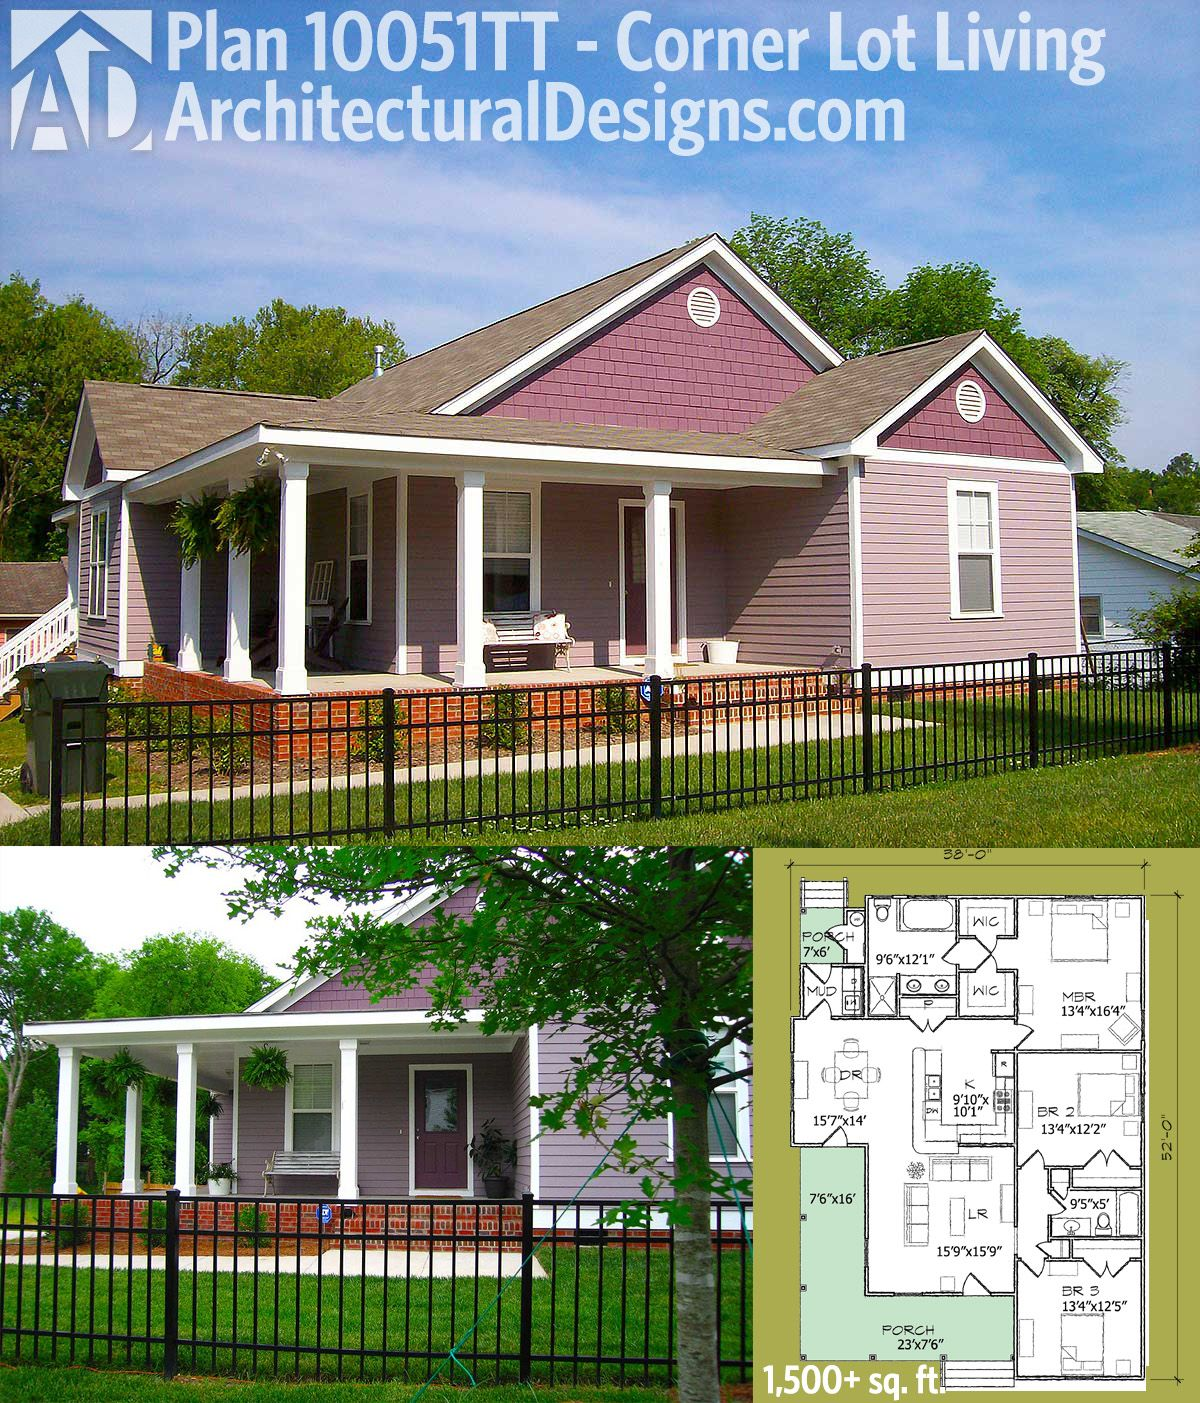 Plan 10051tt Corner Lot Living House Plans Architectural Design House Plans House Design